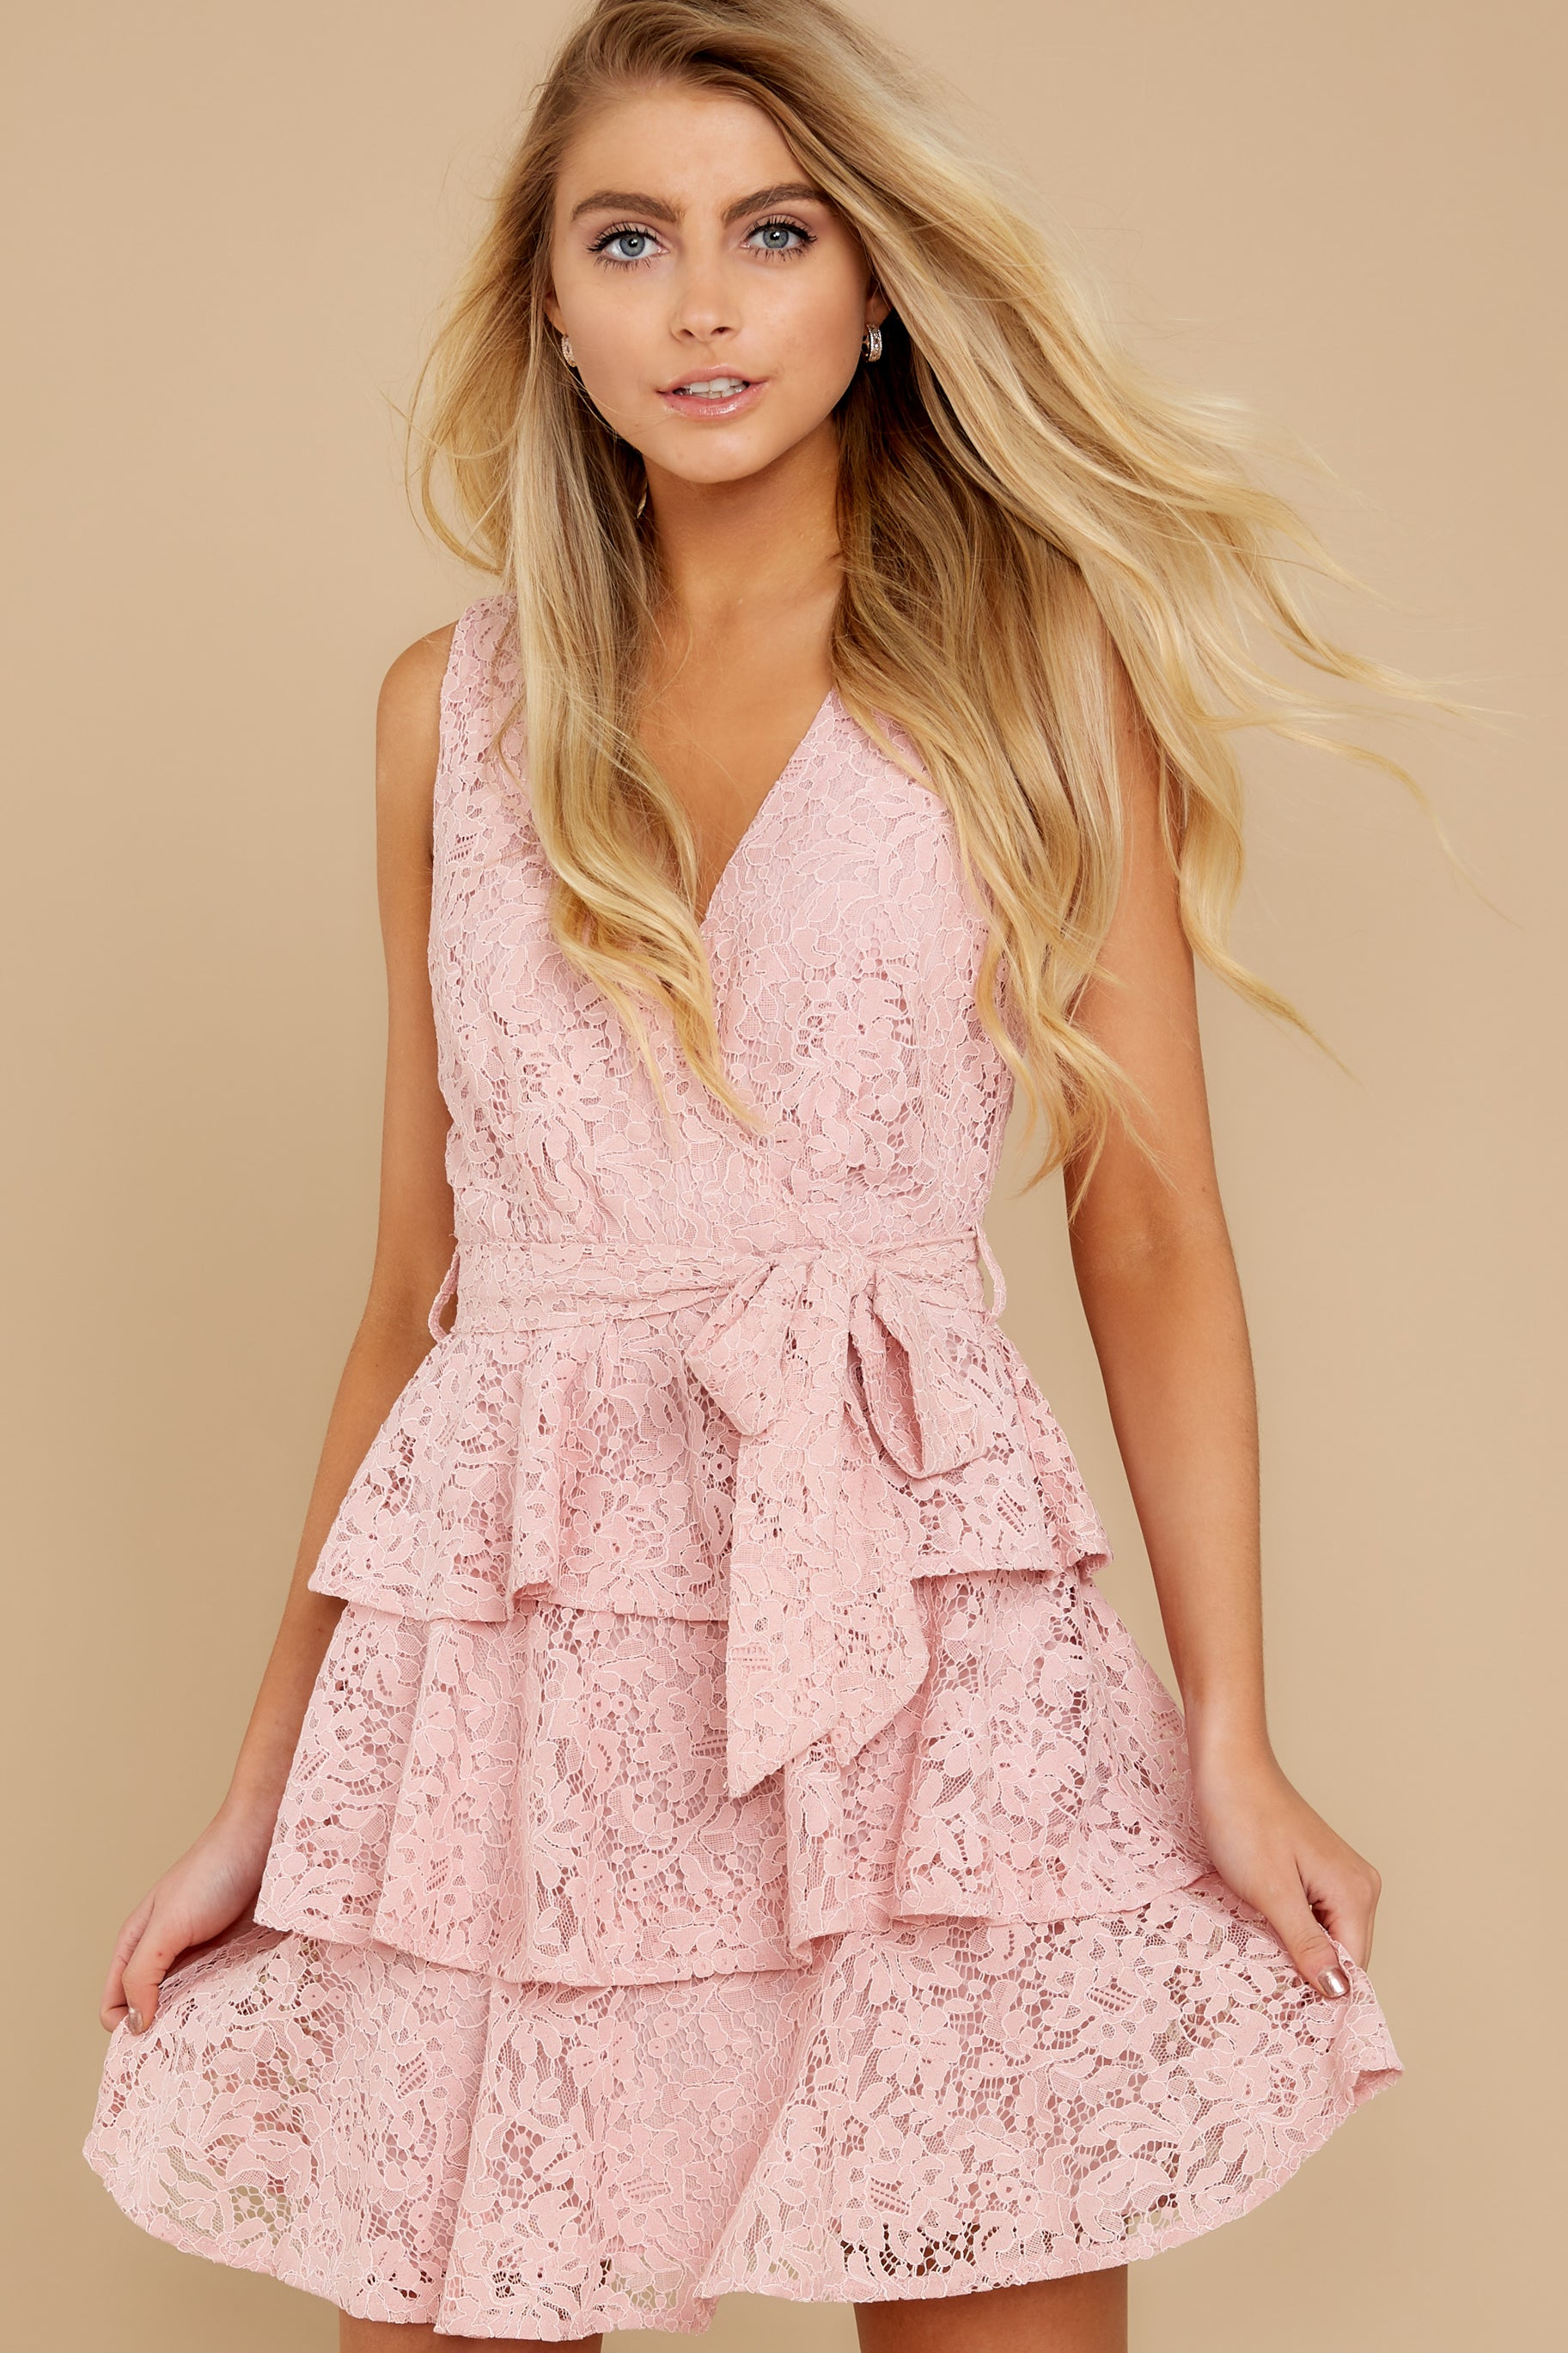 5 Take My Hand Light Pink Lace Dress at reddress.com